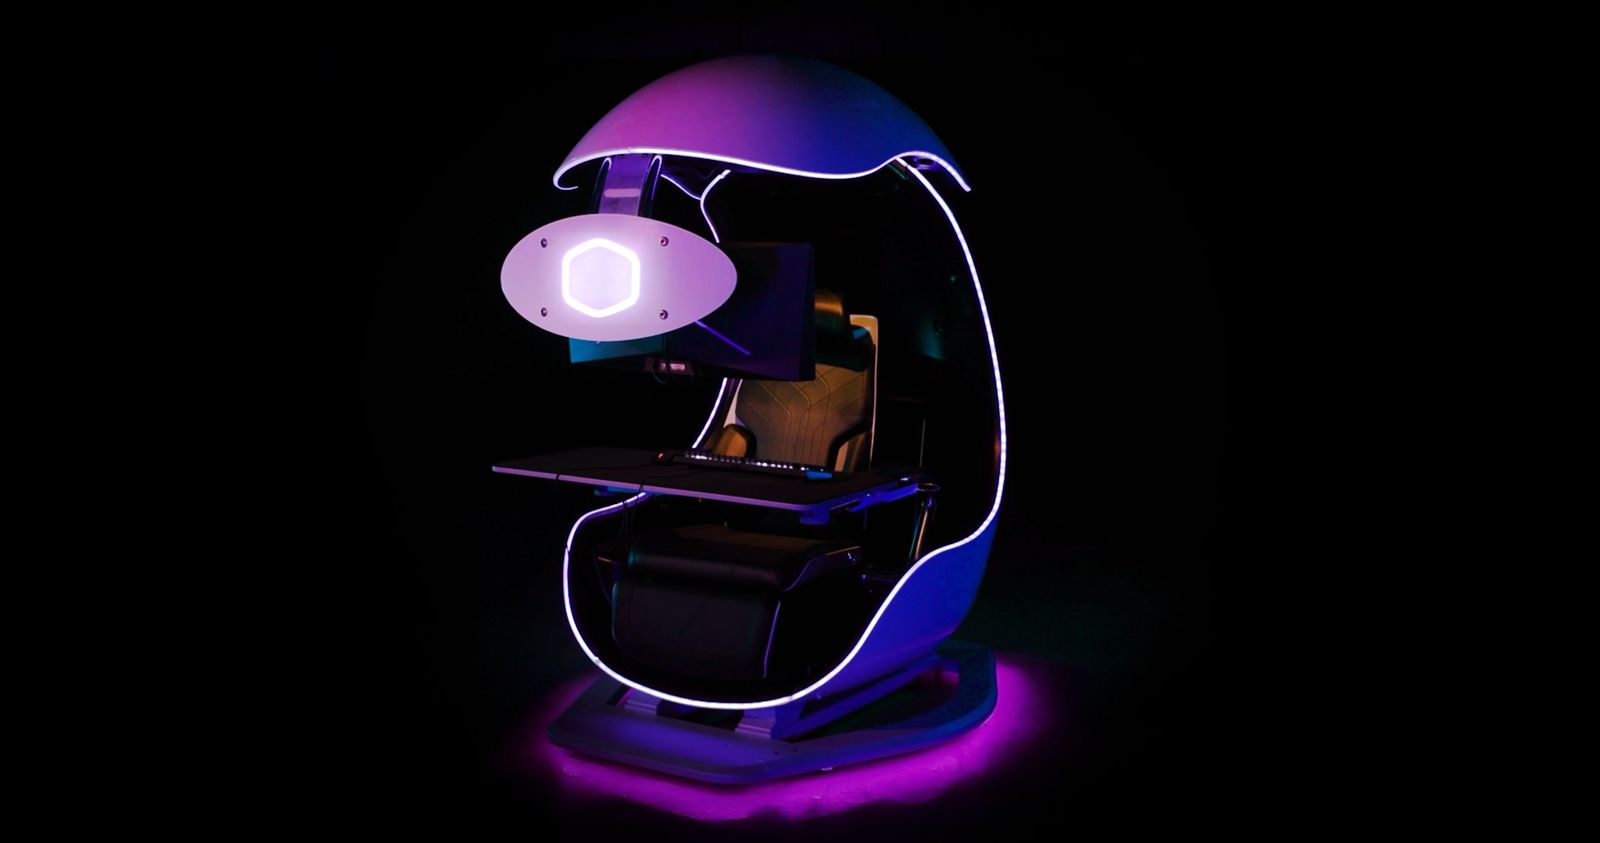 Cooler Master Unveils The ORB X Semi-Enclosed Workstation, A Futuristic Looking & Immersive Gaming Pod